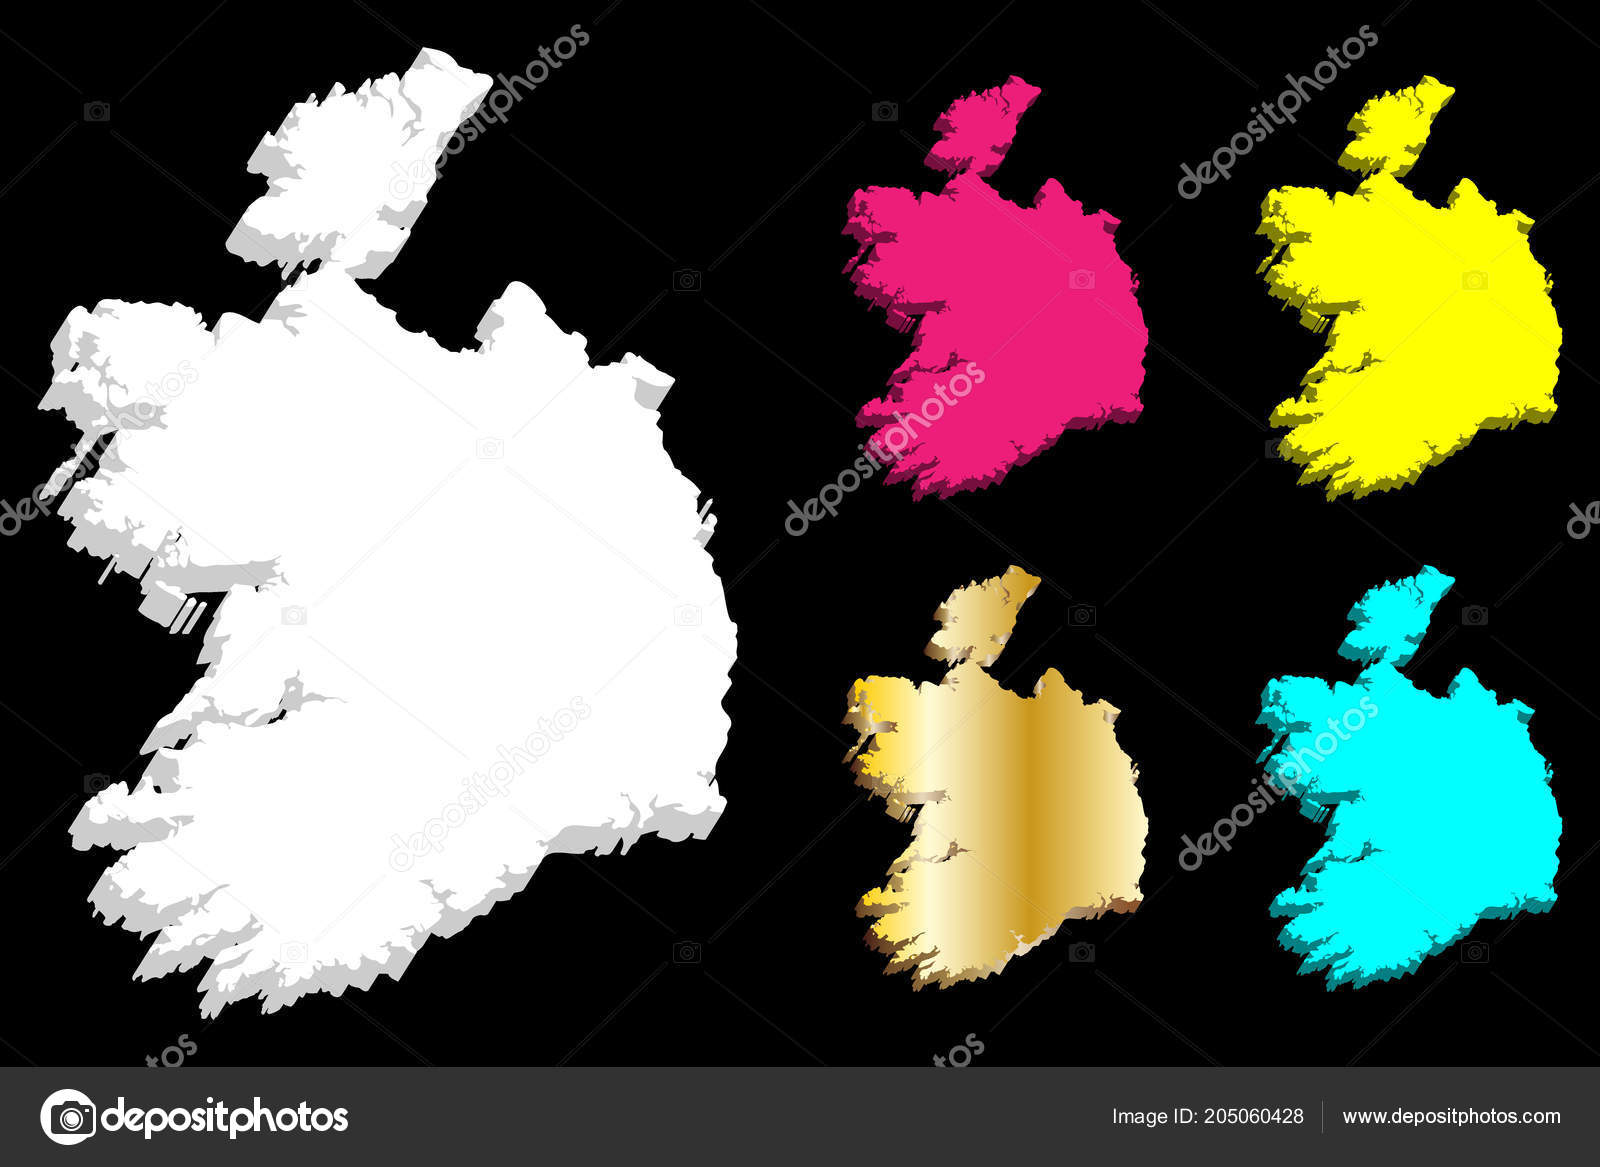 Map Of Ireland Vector.Map Ireland Republic Ireland White Yellow Purple Blue Gold Vector